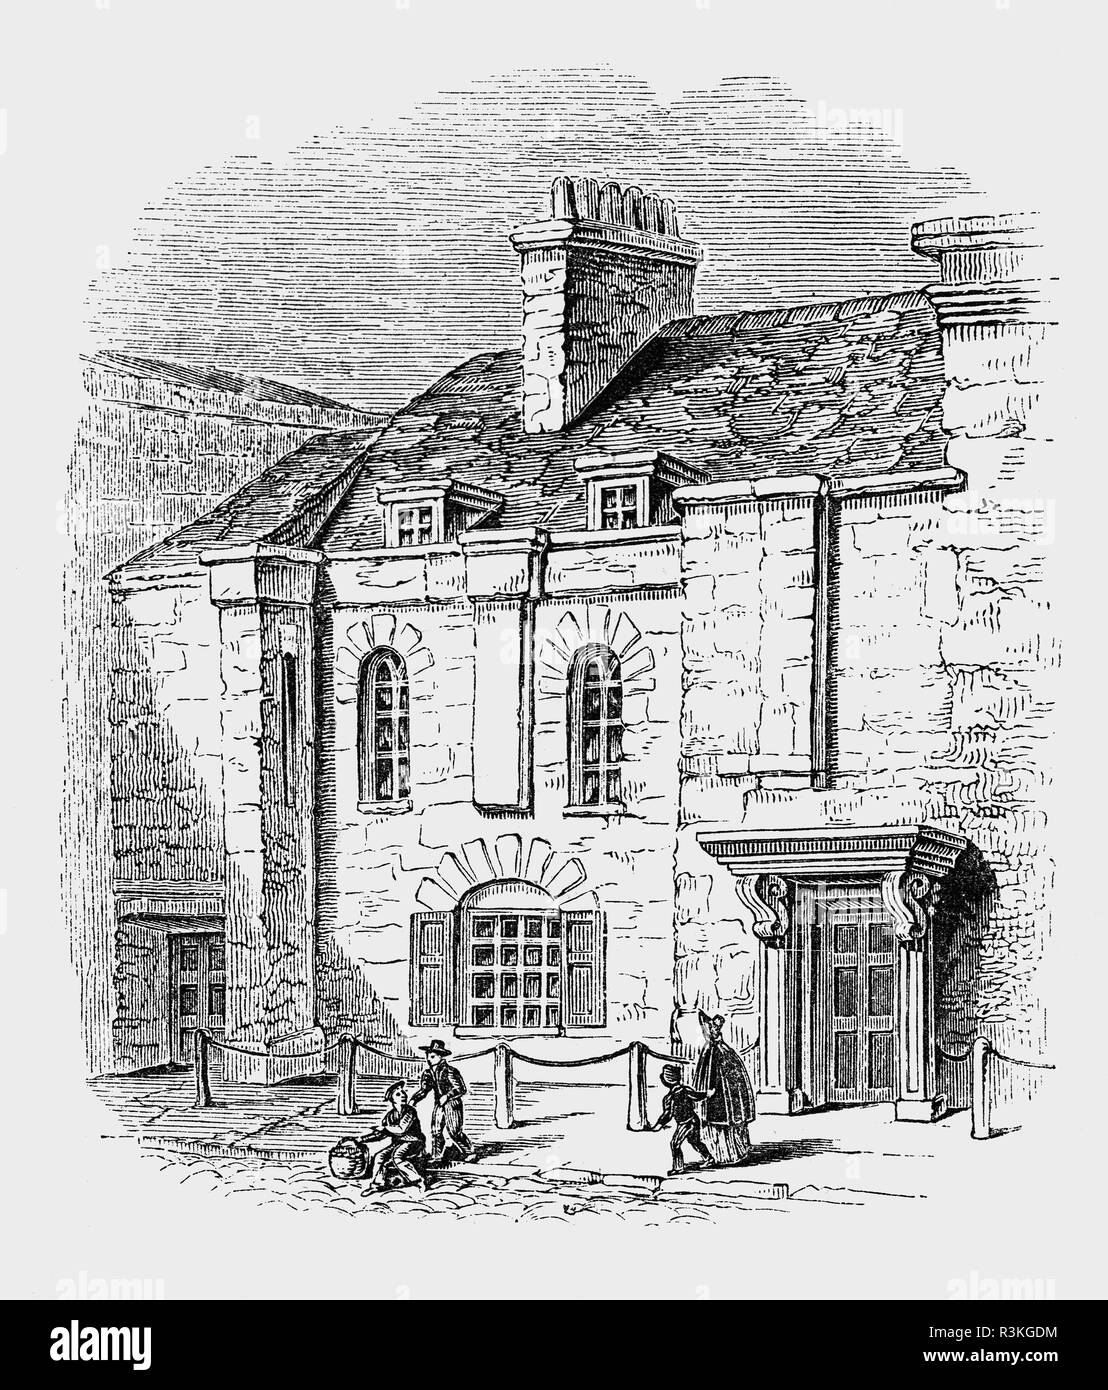 The Greyhound Pub  in Portsmouth, where George Villiers, 1st Duke of Buckingham,(1592-1628),  English courtier, statesman was stabbed him to death, on 23 August 1628. The assassin was John Felton, an army officer who had been wounded in the earlier military adventure and believed he had been passed over for promotion by Buckingham. He was a favourite and possibly  lover of King James I of England. He remained at the height of royal favourduring the reign of King Charles I until he died. - Stock Image